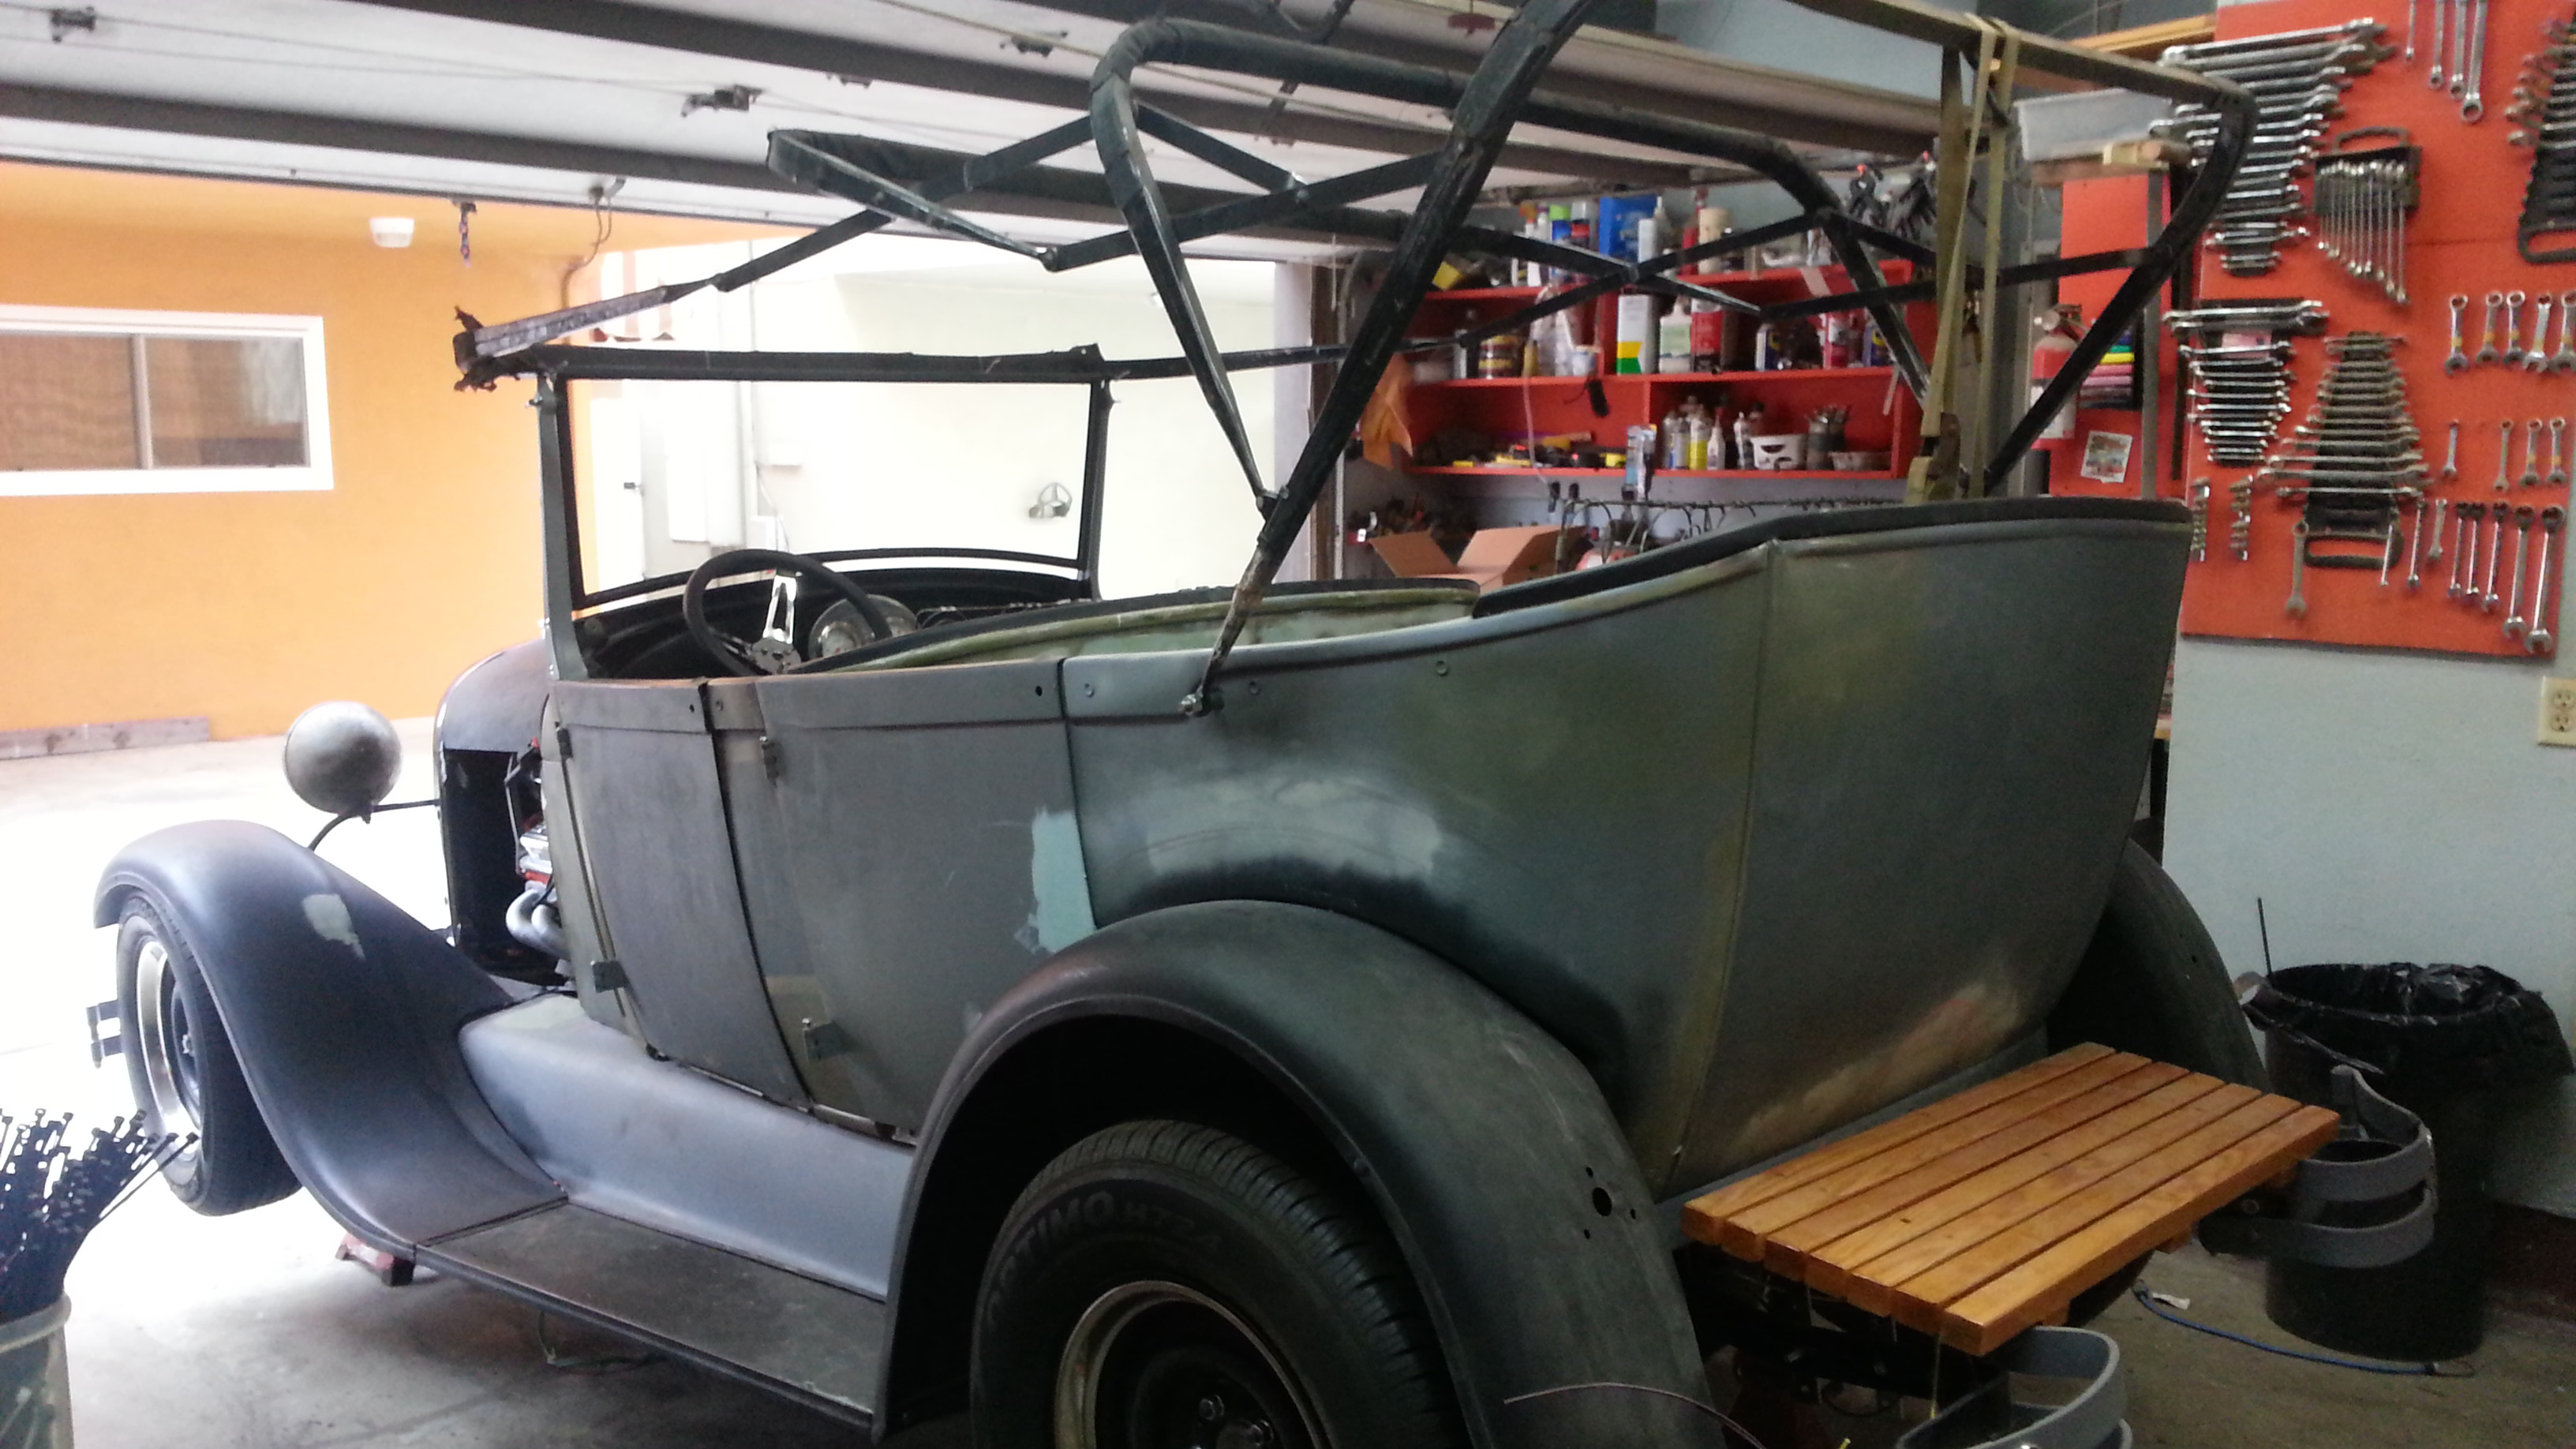 Chevy 4.3 V6 Engine For Sale >> 1928 ford phaeton project | The H.A.M.B.